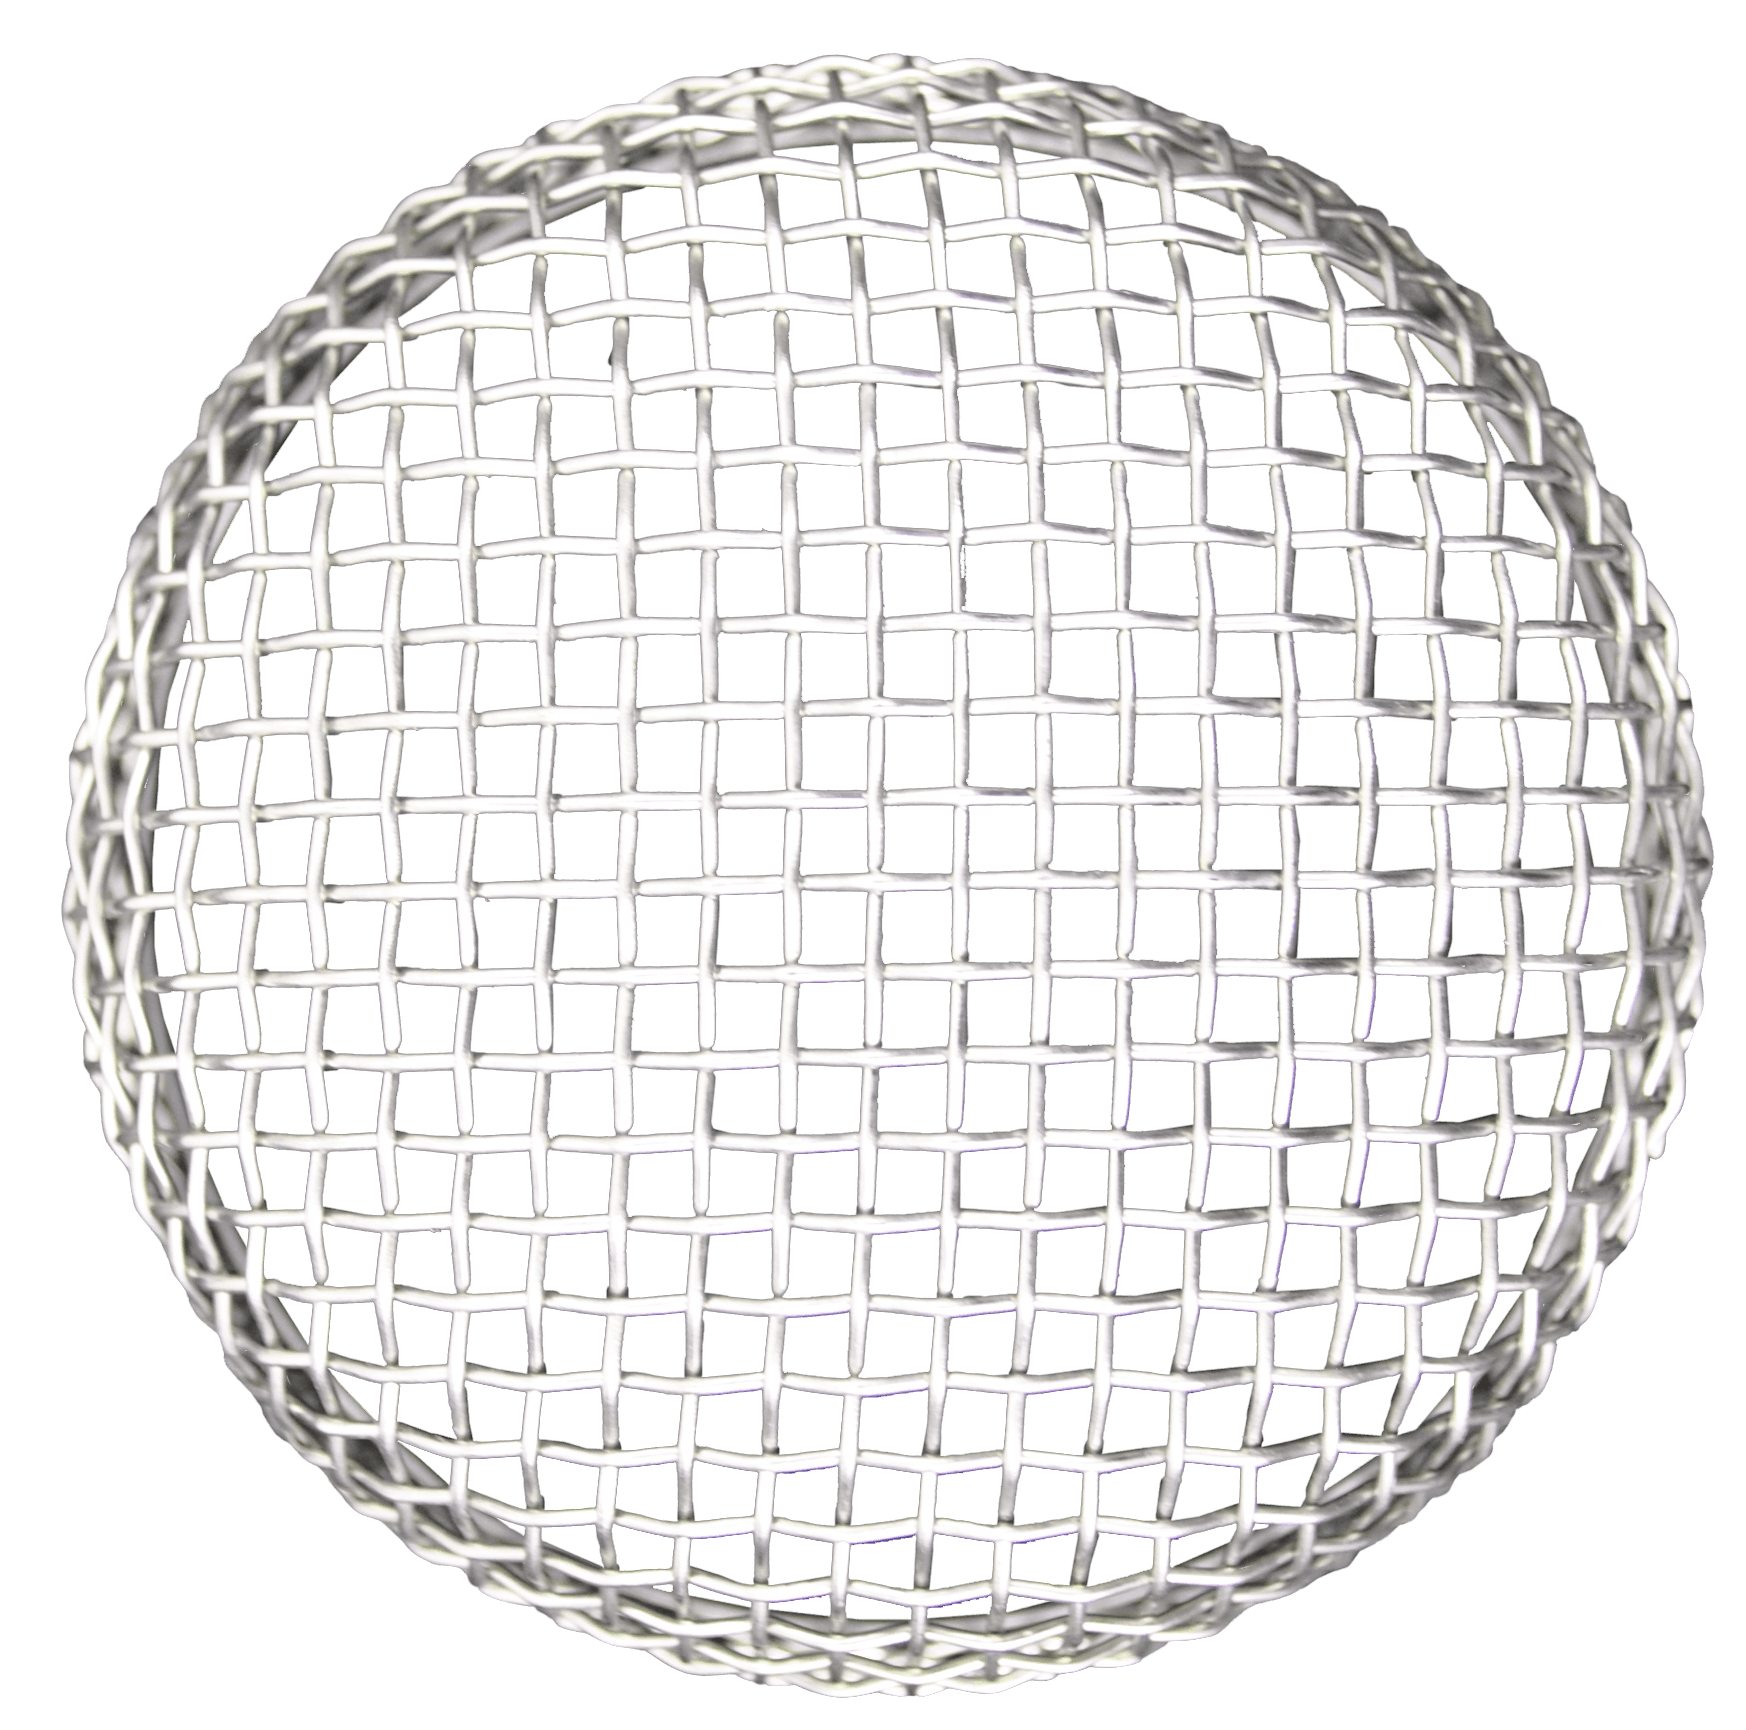 BUG STOPPER INSECT SCREEN-FURNACE 2PK 2.75″ Round